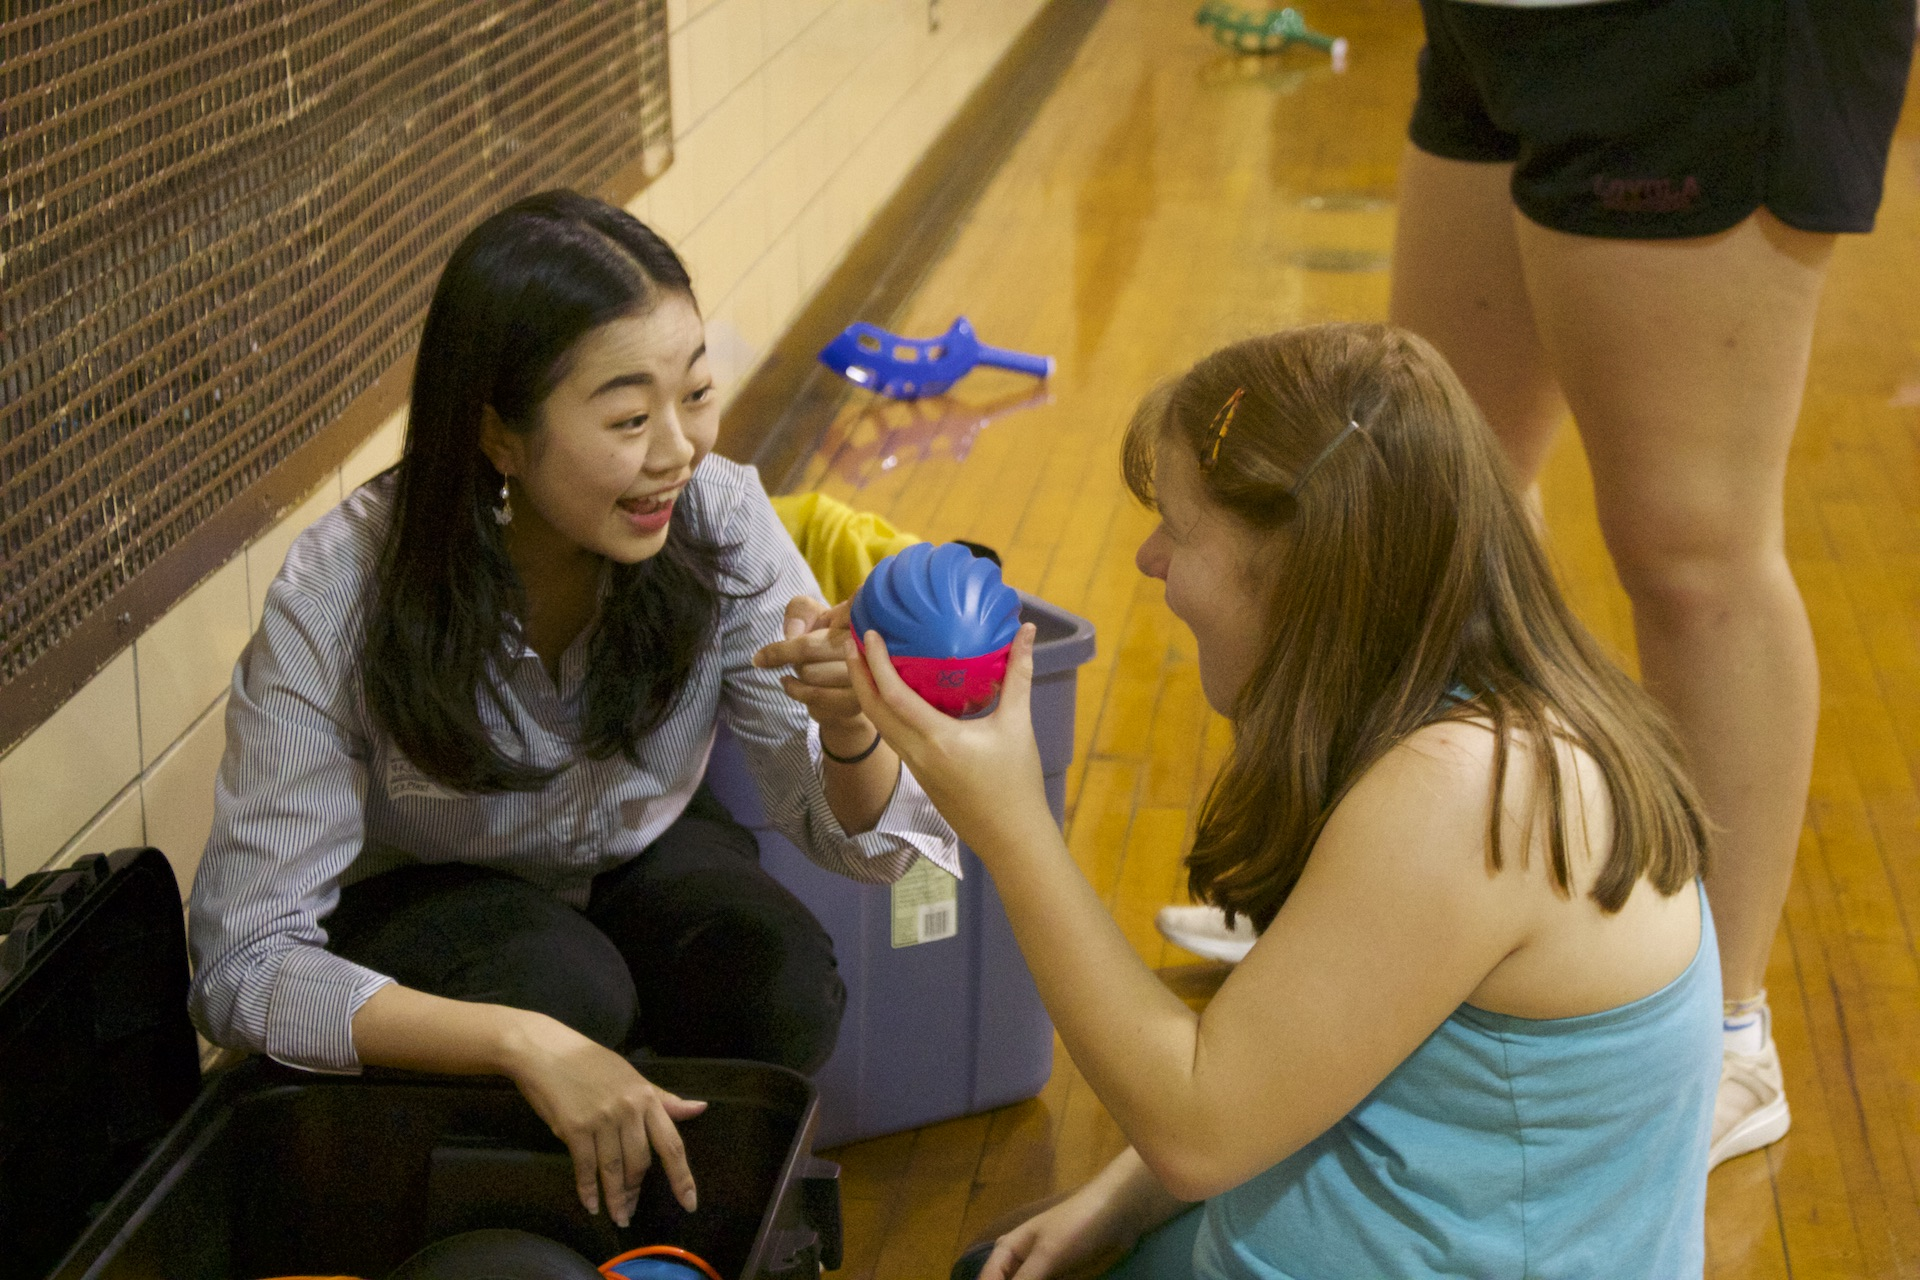 A KEEN Chicago volunteer helps a KEEN athlete pick out an activity for the day.